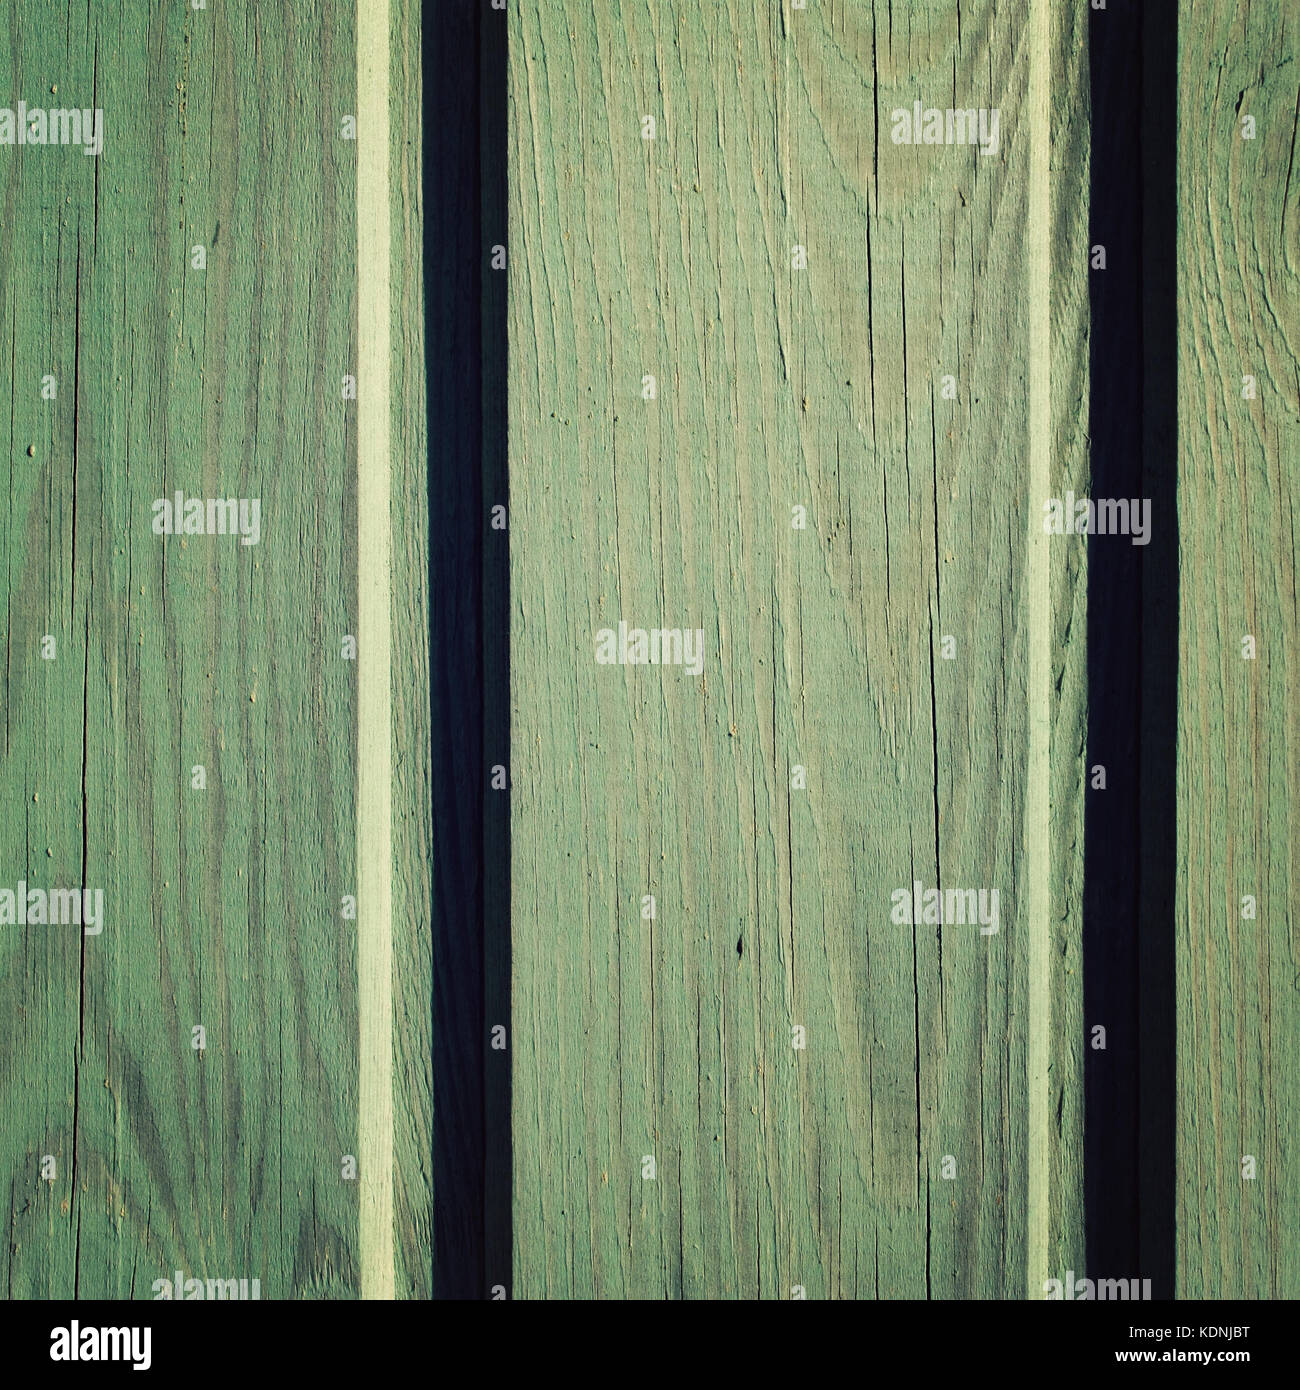 Green wooden background. Painted texture. Colorful wall. Close up photo. Toned image. - Stock Image